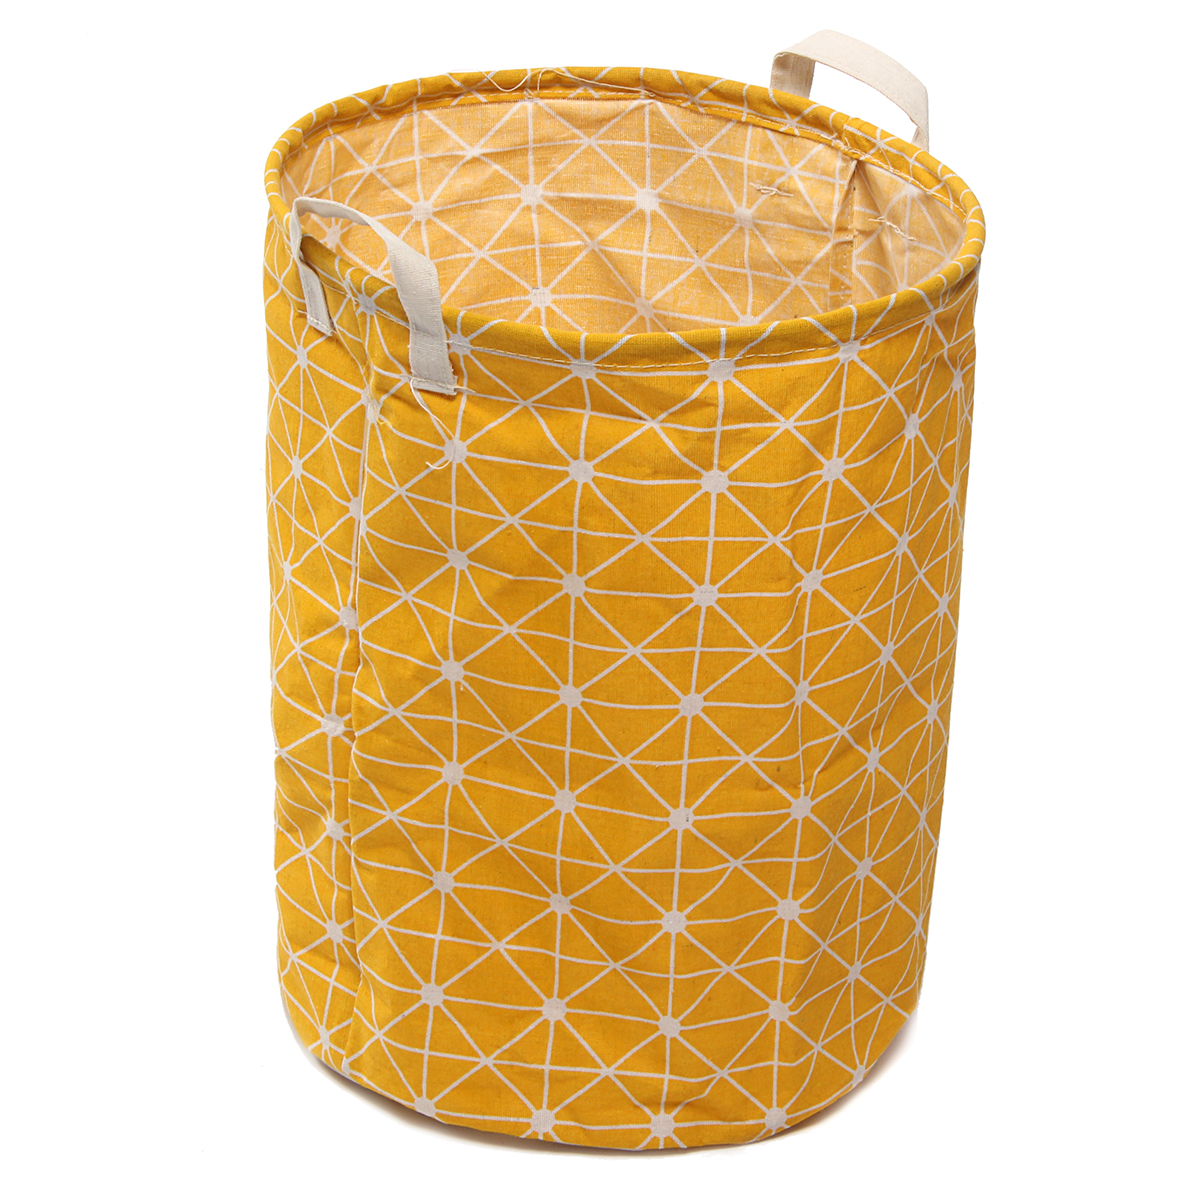 Cotton Linen Foldable Dirty Washing Clothes Laundry Basket Hamper Toy Storage Organizer Bag For Home Dormitory